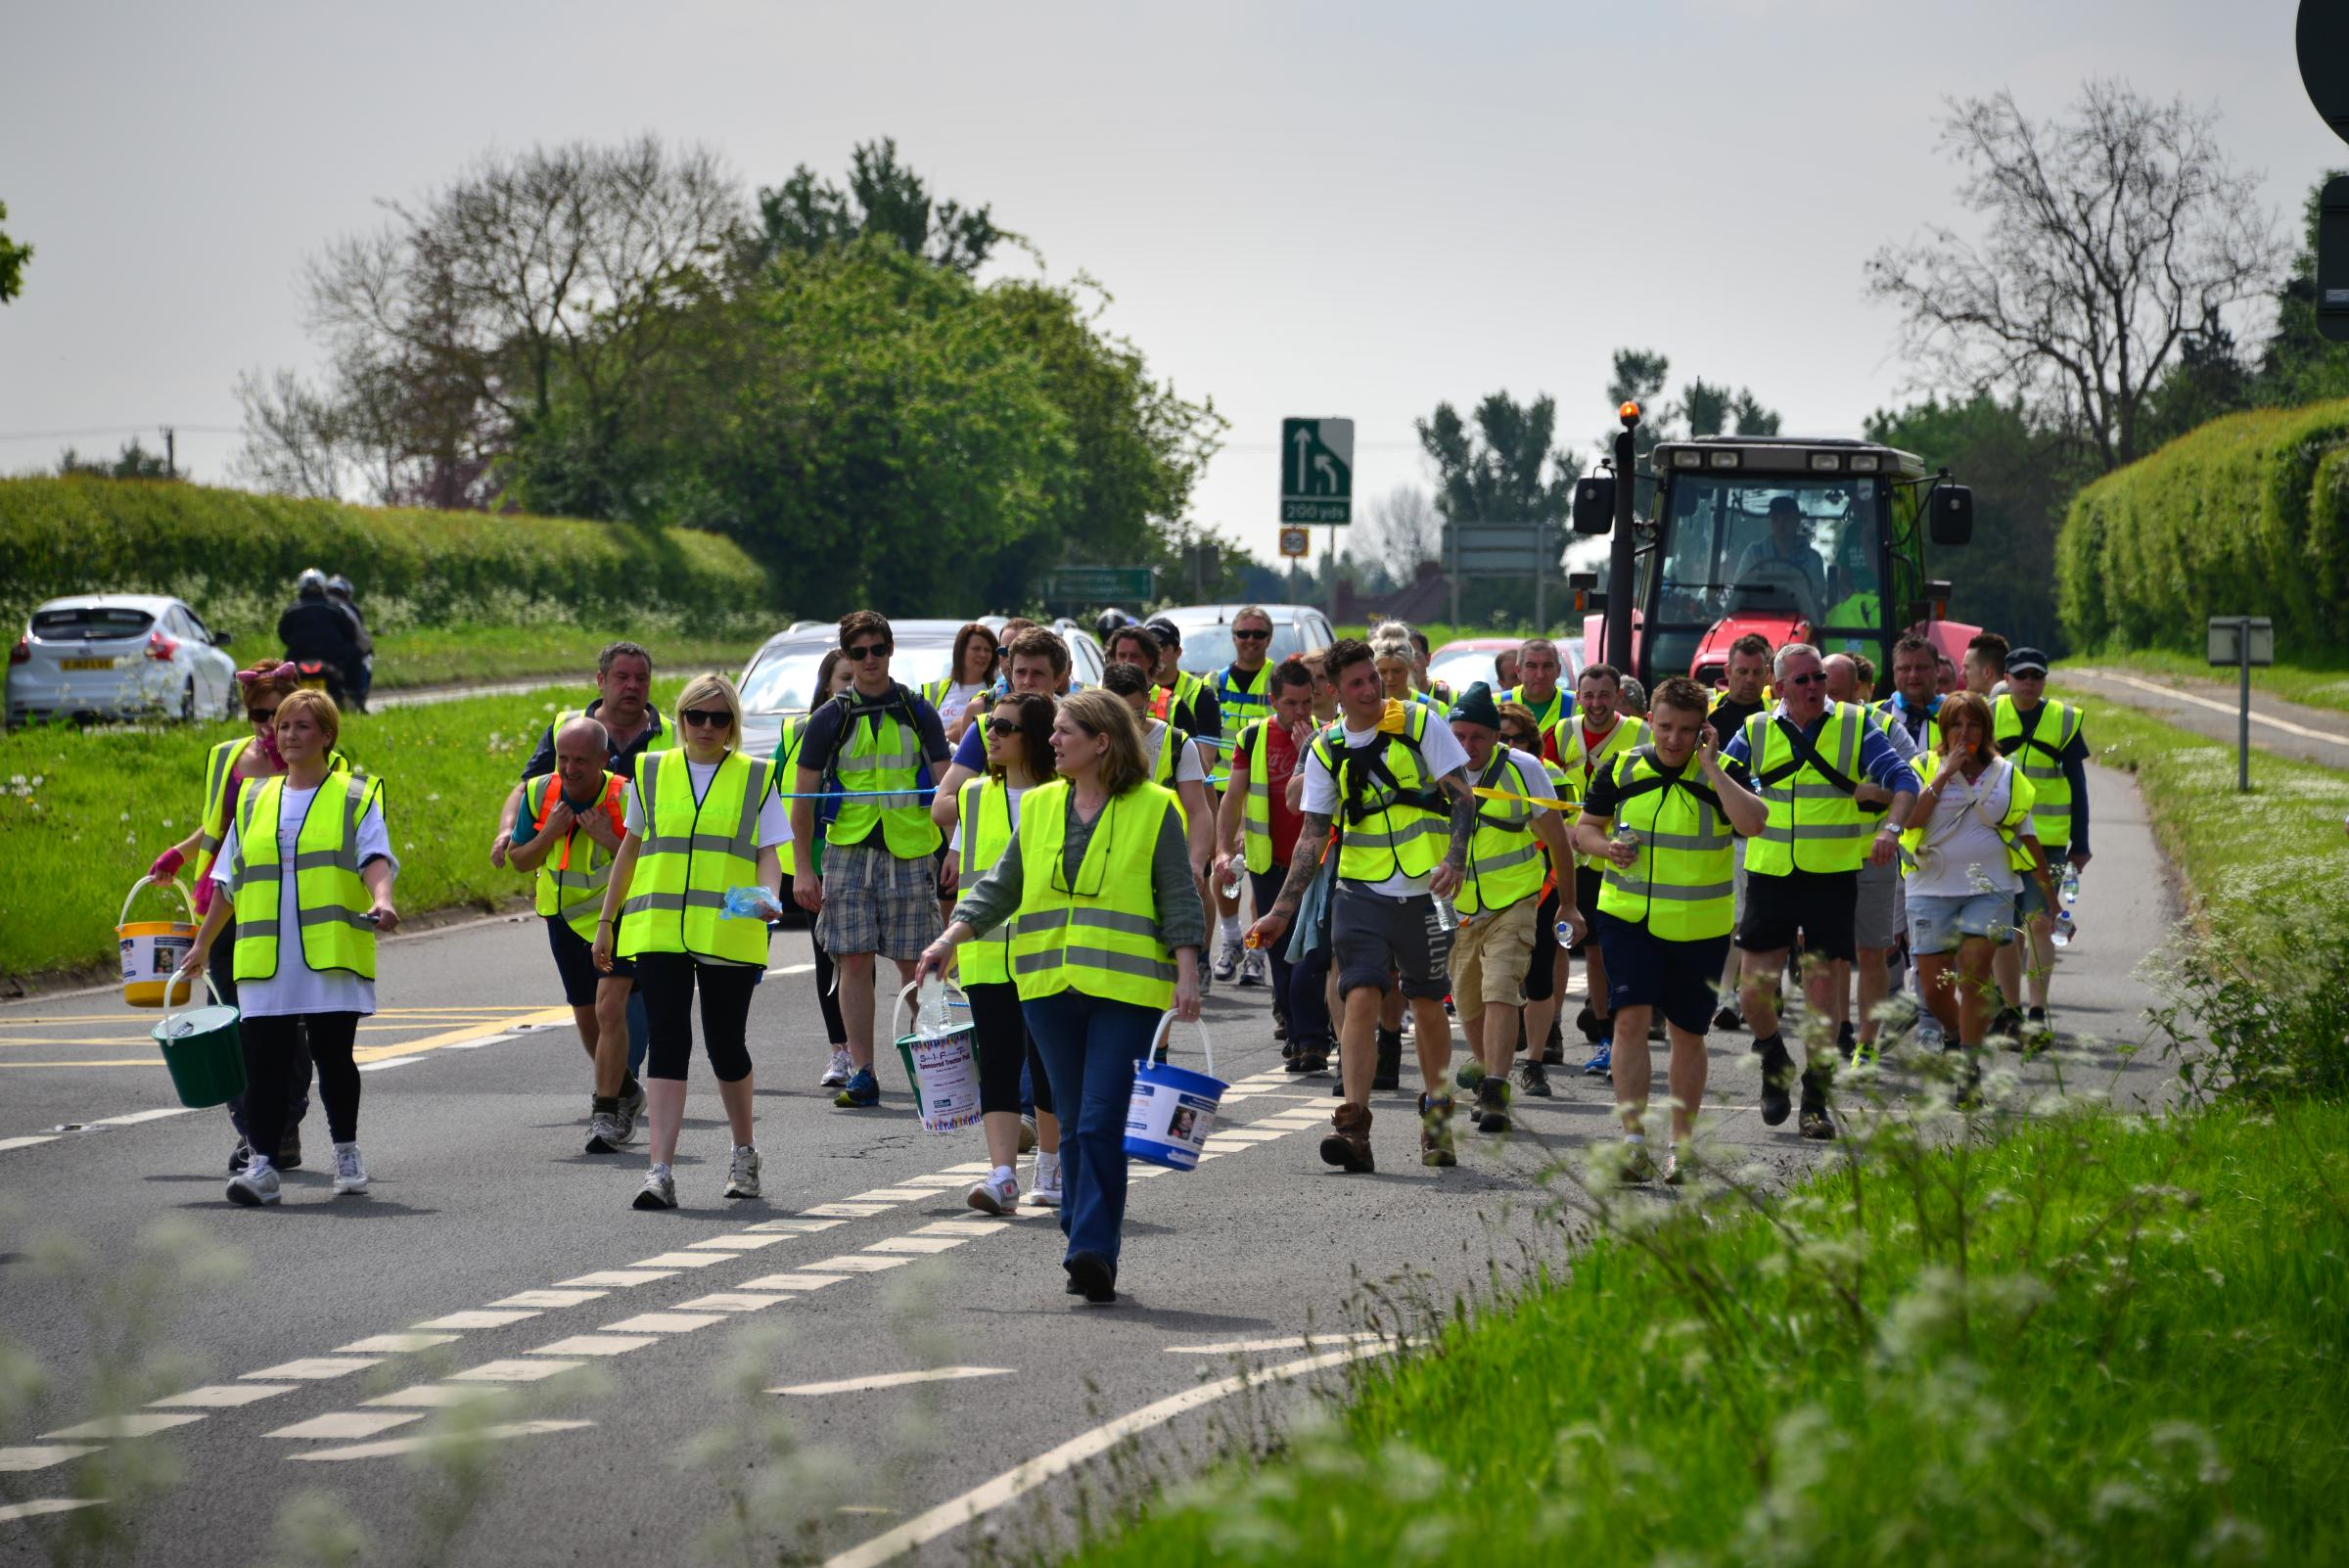 ON THE PULL: Members of the Station Inn, Kidderminster, pull the 5.5 tonne tractor down the A449 between Droitwich and Kidderminster.